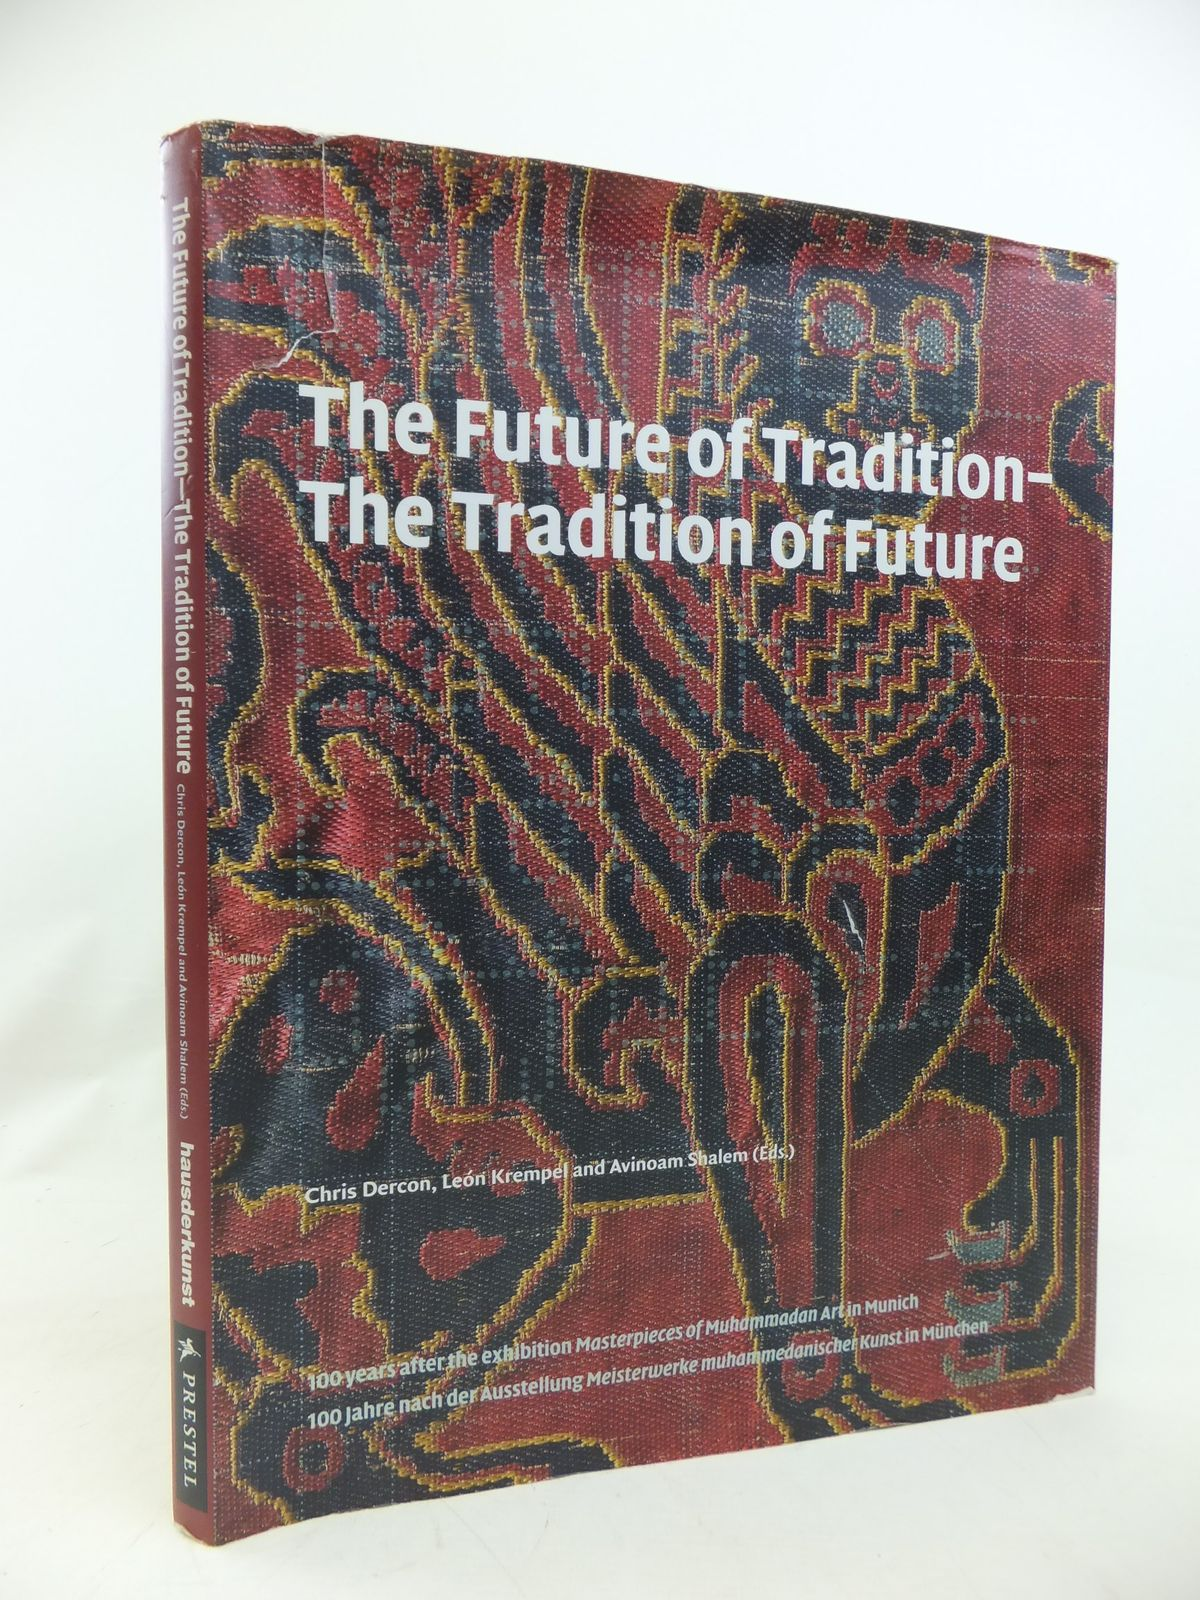 Photo of THE FUTURE OF TRADITION - THE TRADITION OF FUTURE written by Dercon, Chris Krempel, Leon Shalem, Avinoam published by Prestel (STOCK CODE: 1810451)  for sale by Stella & Rose's Books